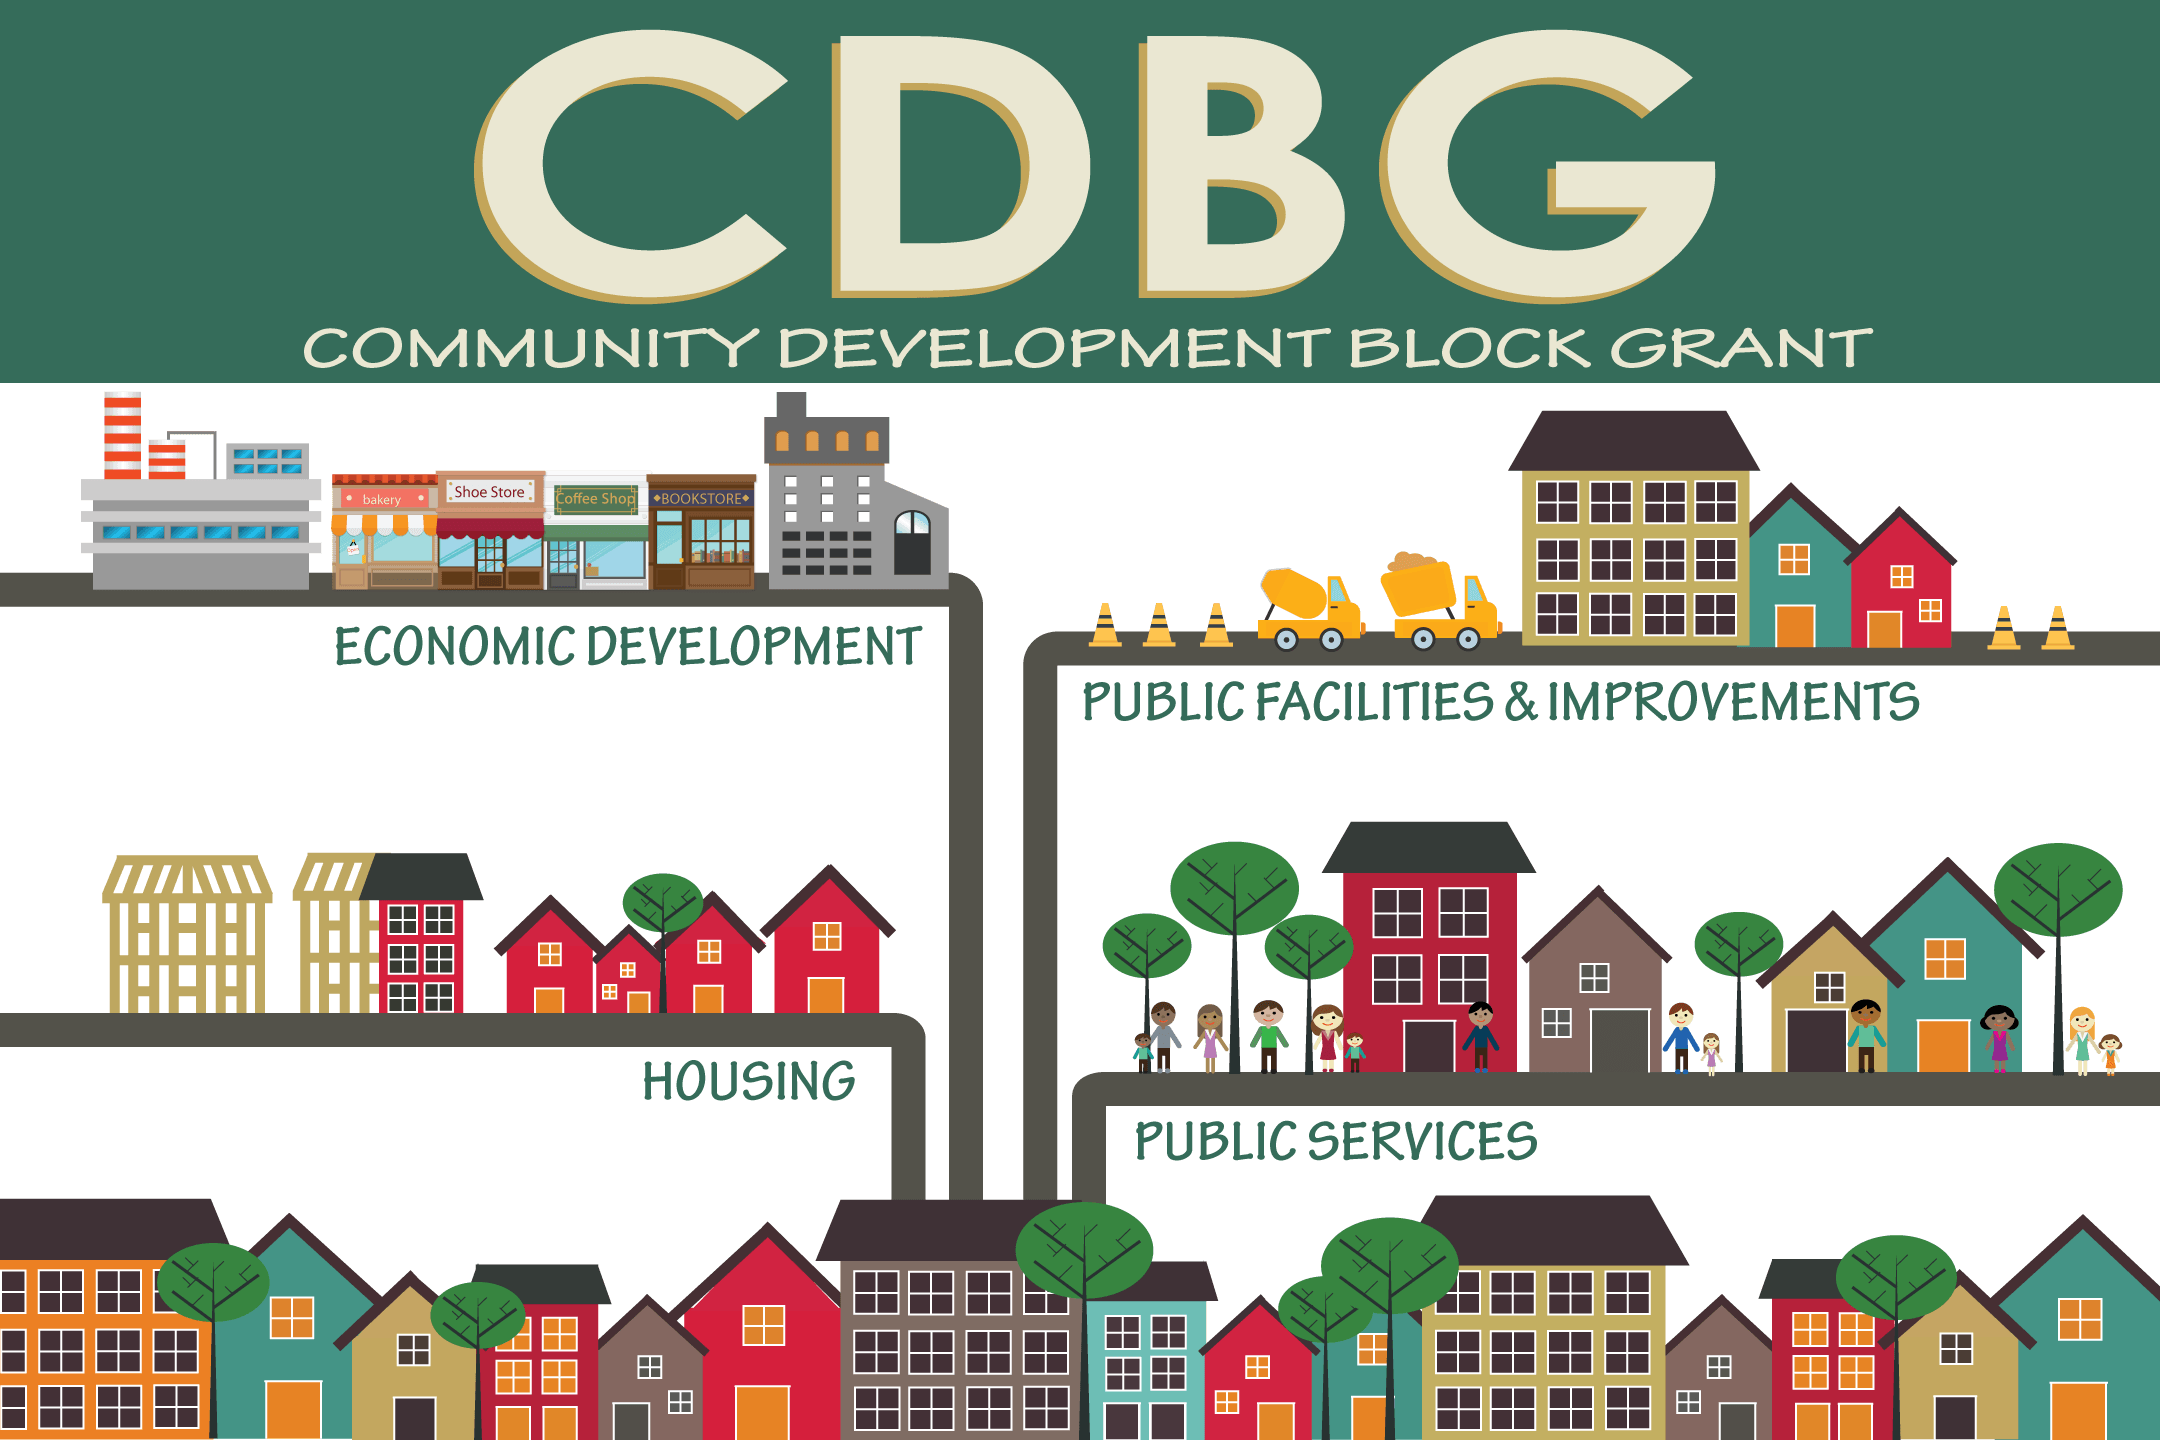 Community Development Block Grant Accepting Applications for Fiscal Year 2019 to 2020